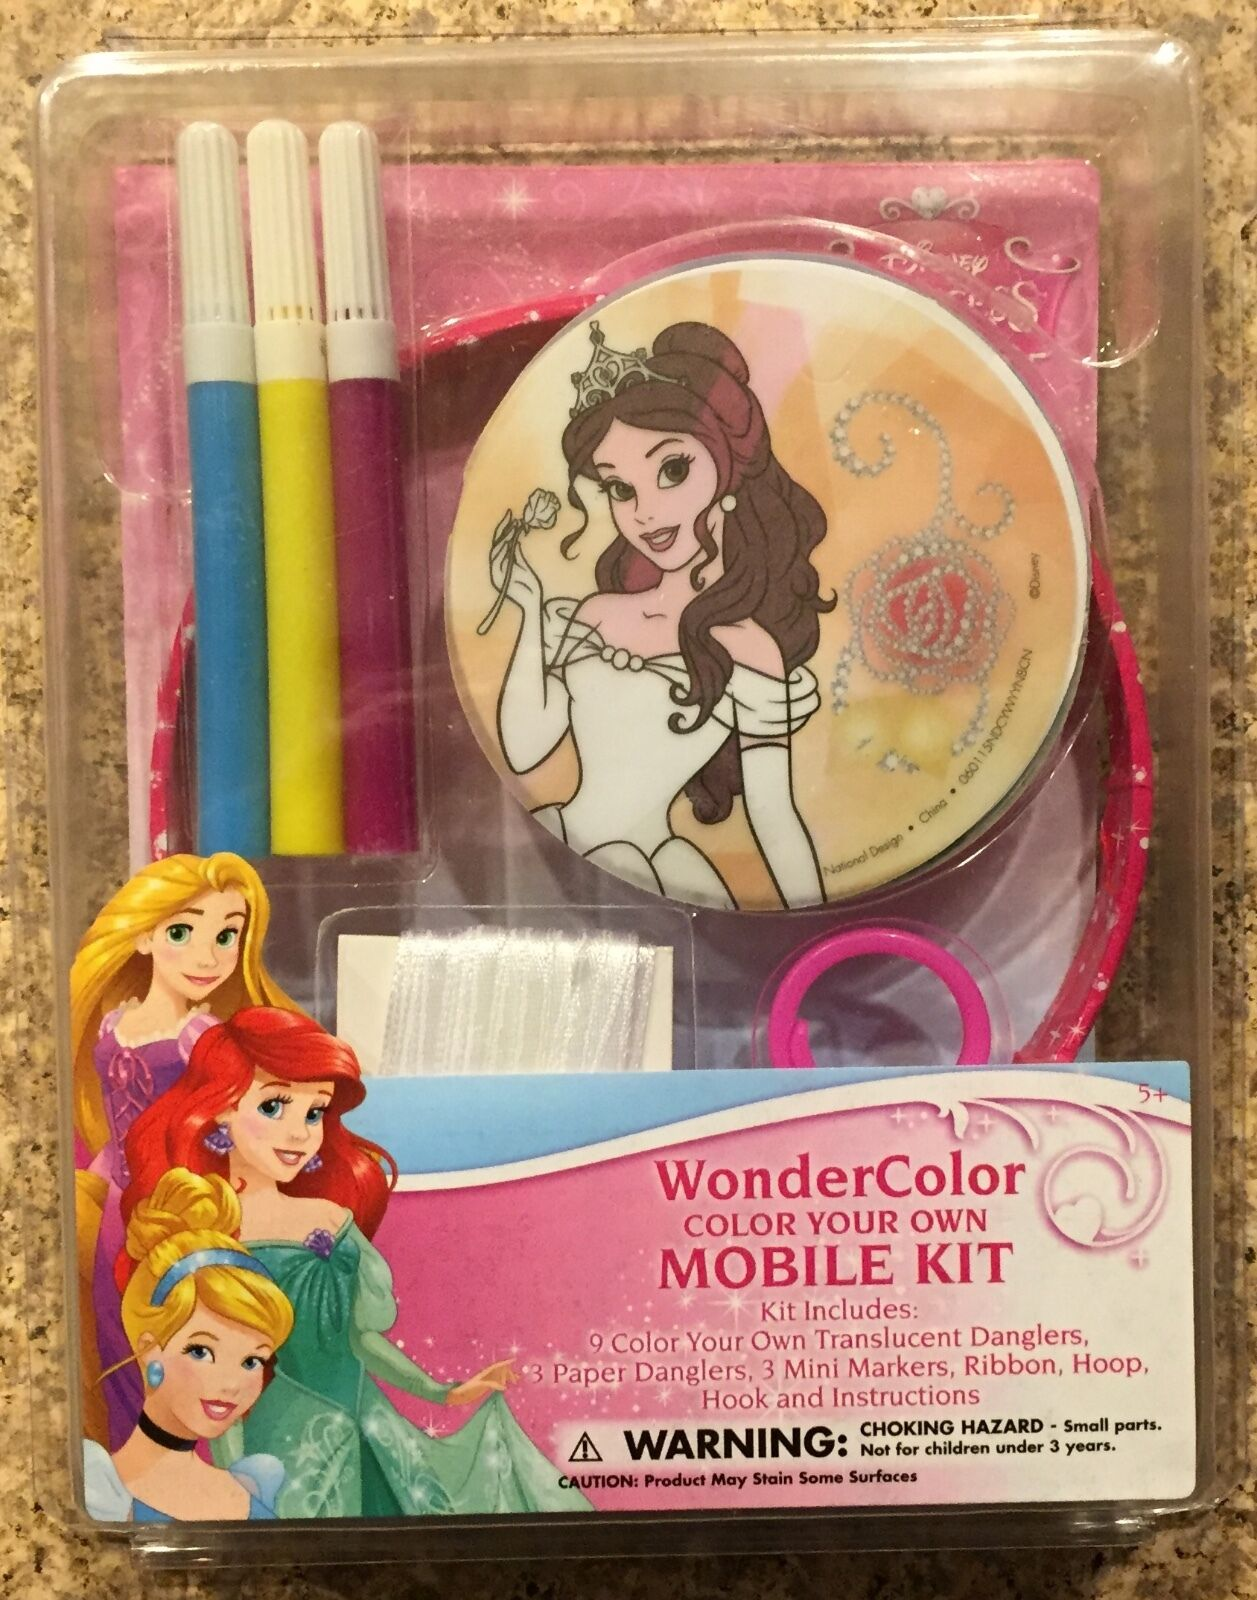 Disney princess coloring kit - Picture 1 Of 2